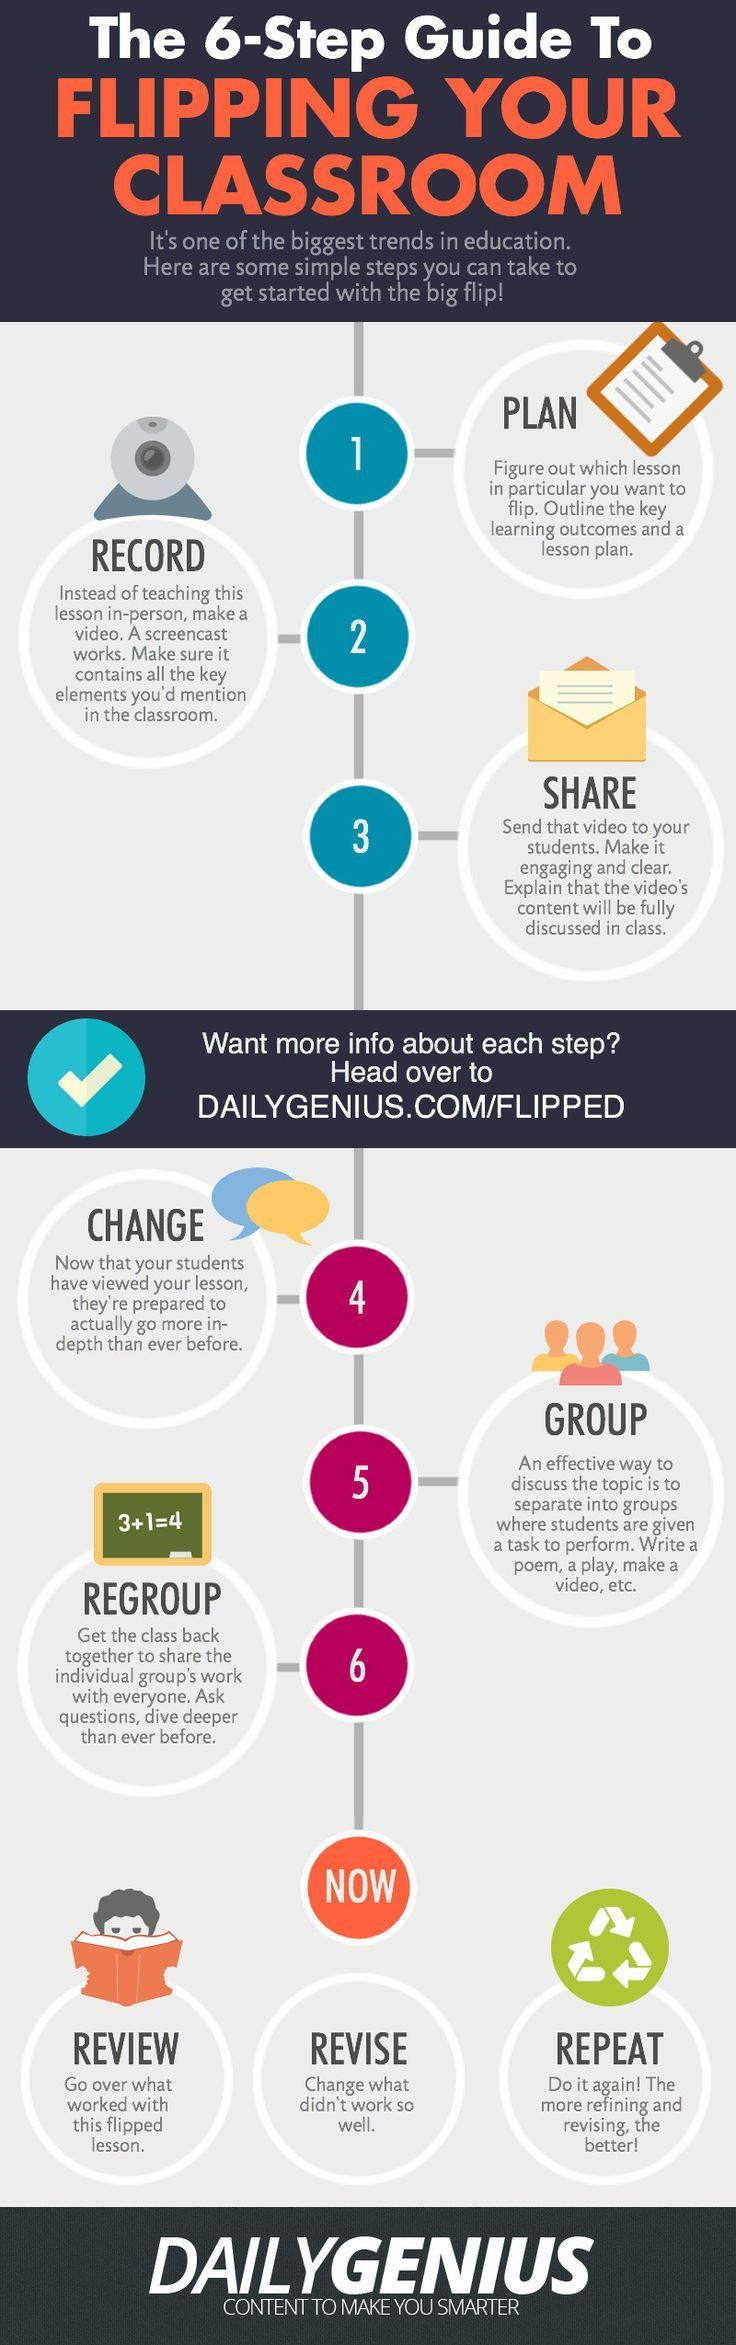 Blog post at Brilliant or Insane : Have you considered creating a flipped classroom? No, this doesn't mean turning your room upside down. The flipped classroom is about impl[..]